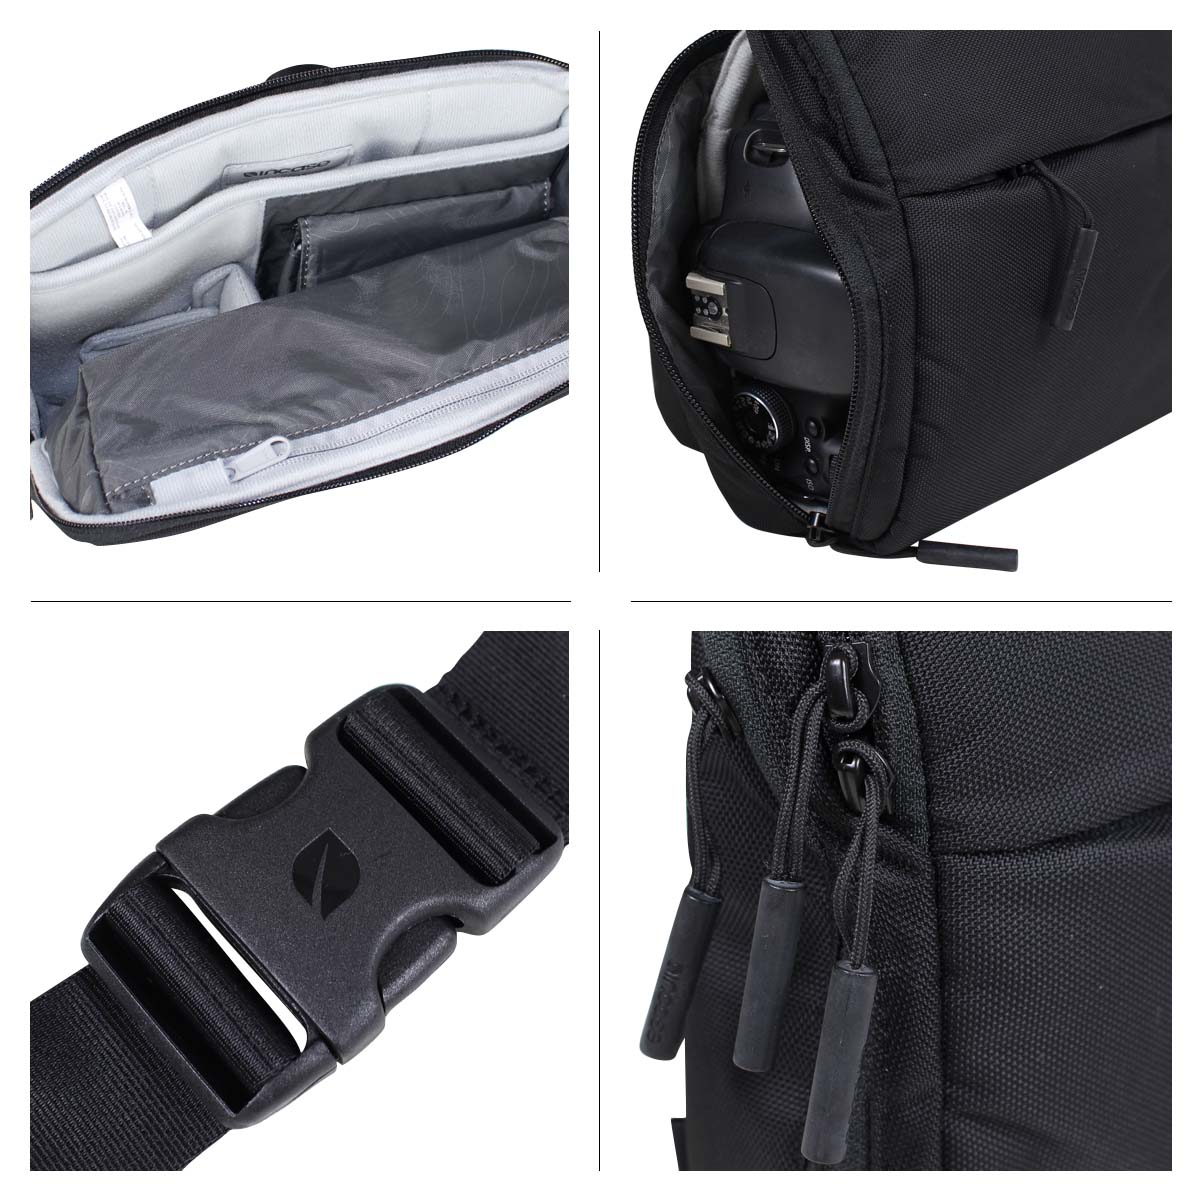 In Case Incase Camera Bag Point And Shoot Field Men Gap Dis Black Cl58066